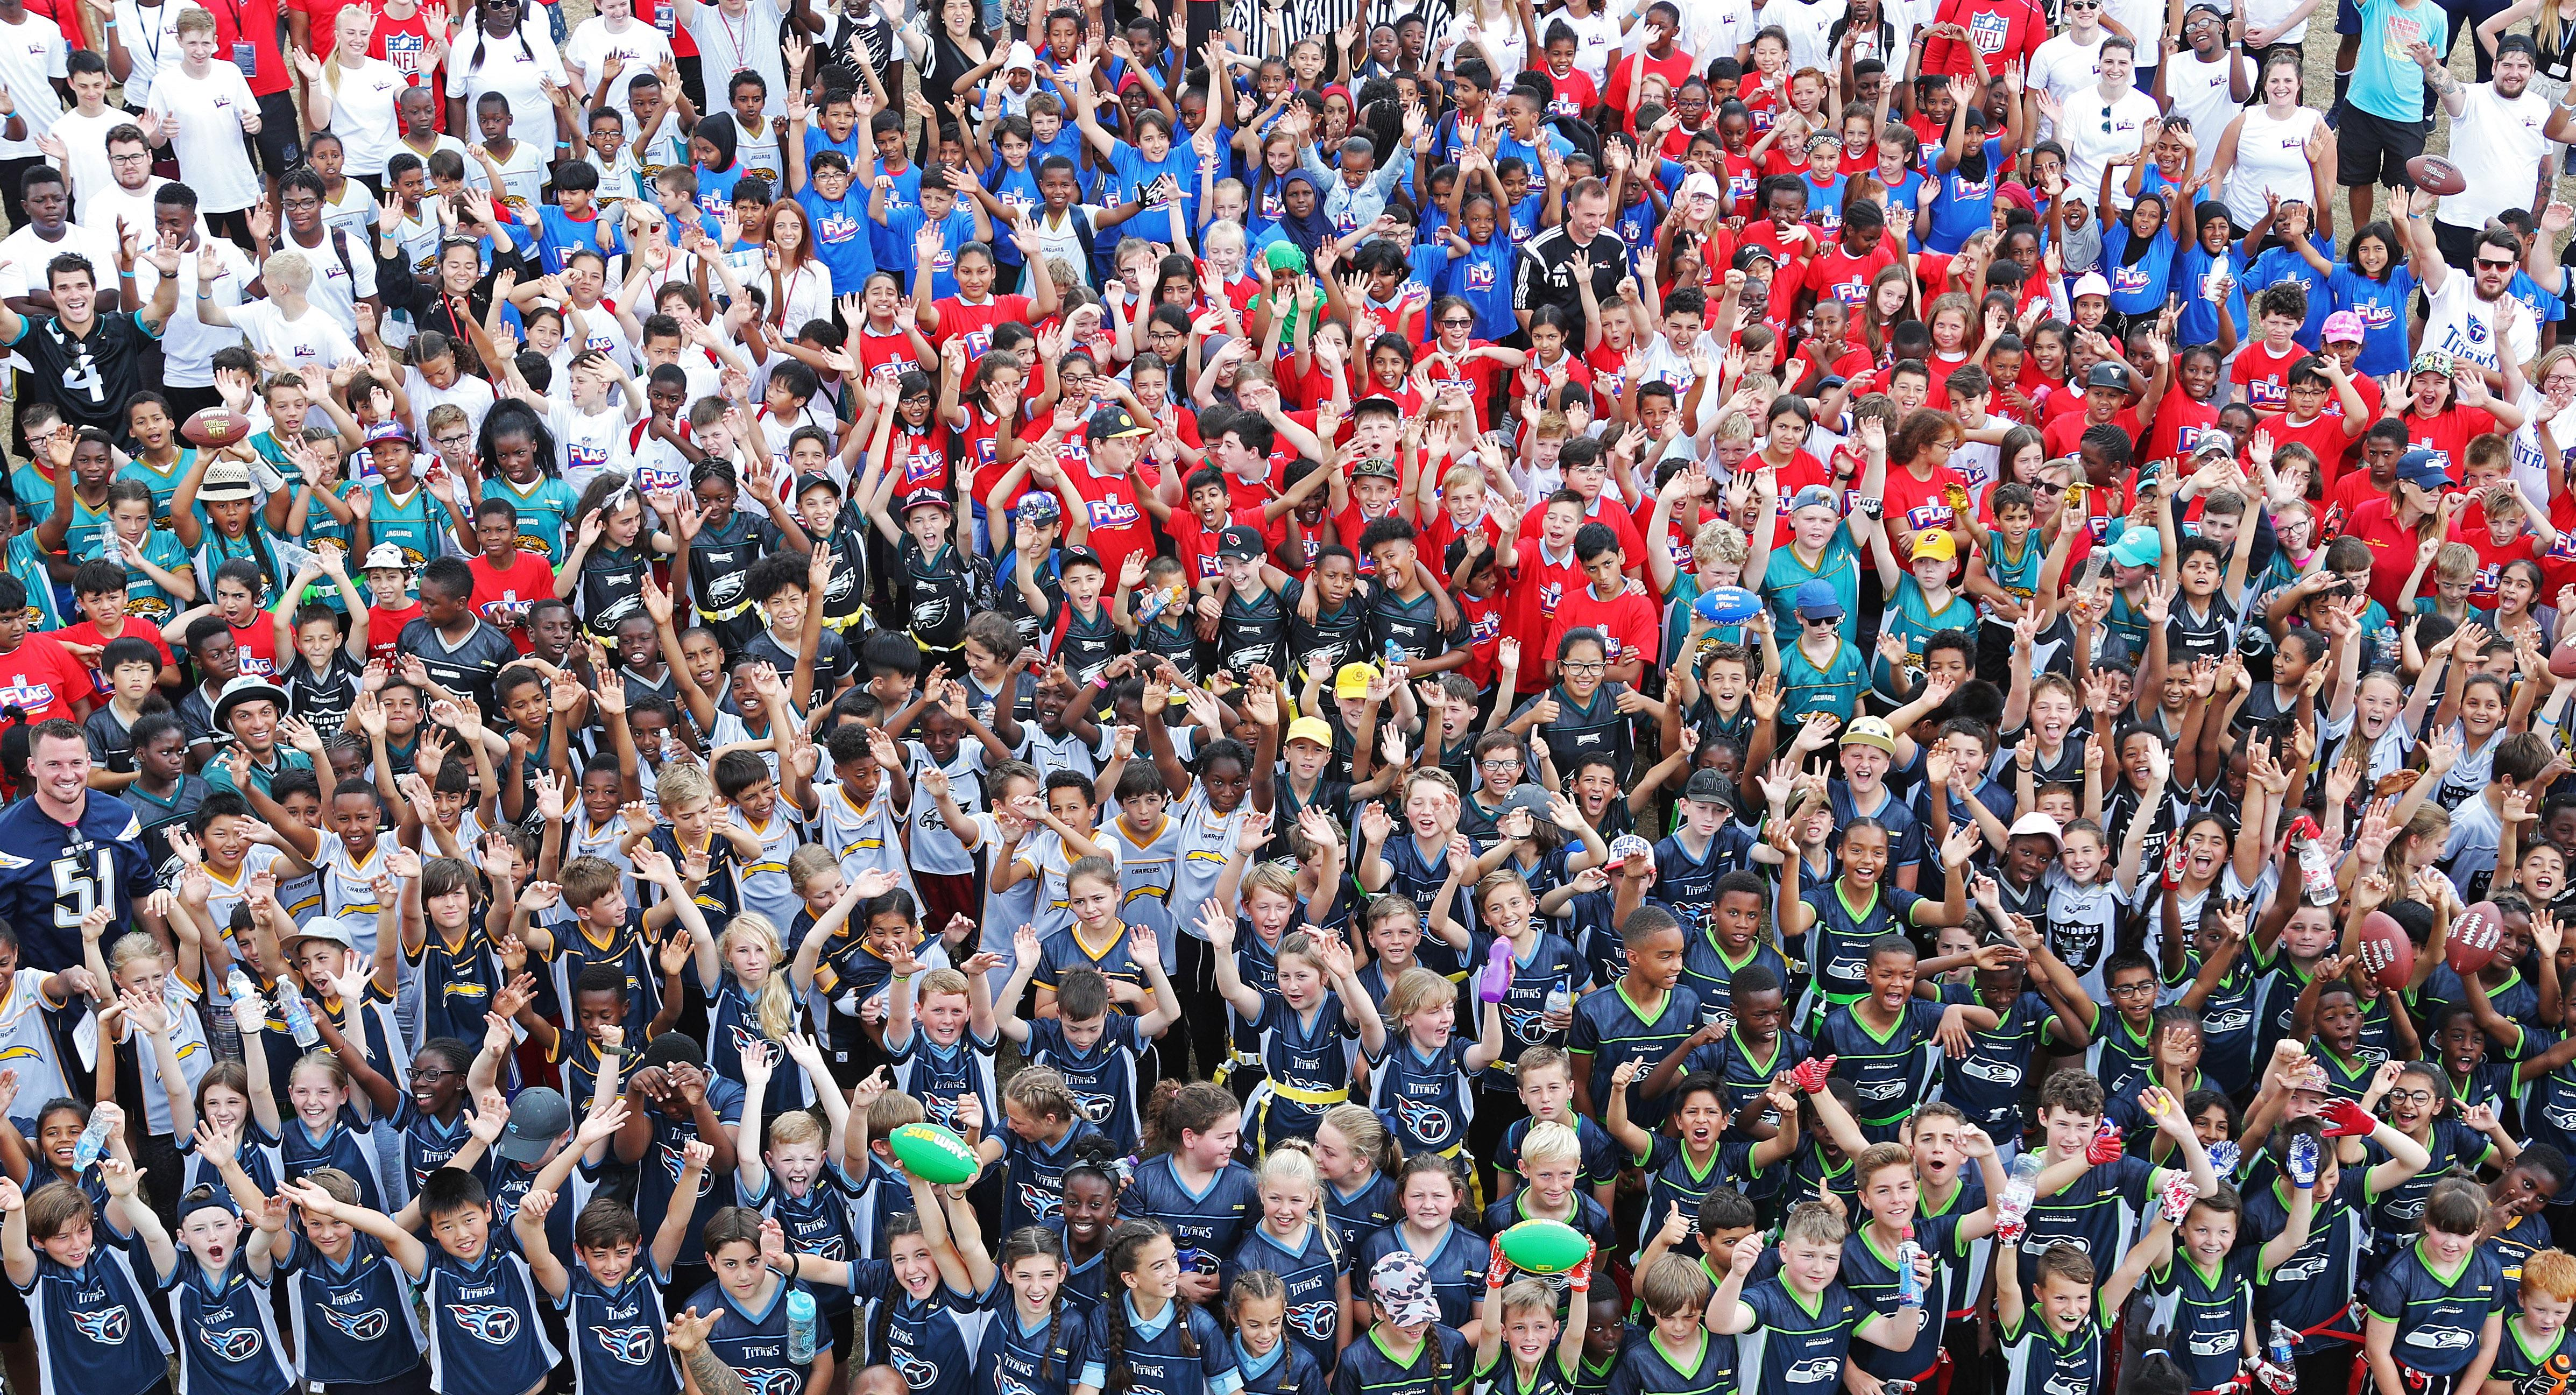 1000 schoolkids got the chance to play American football